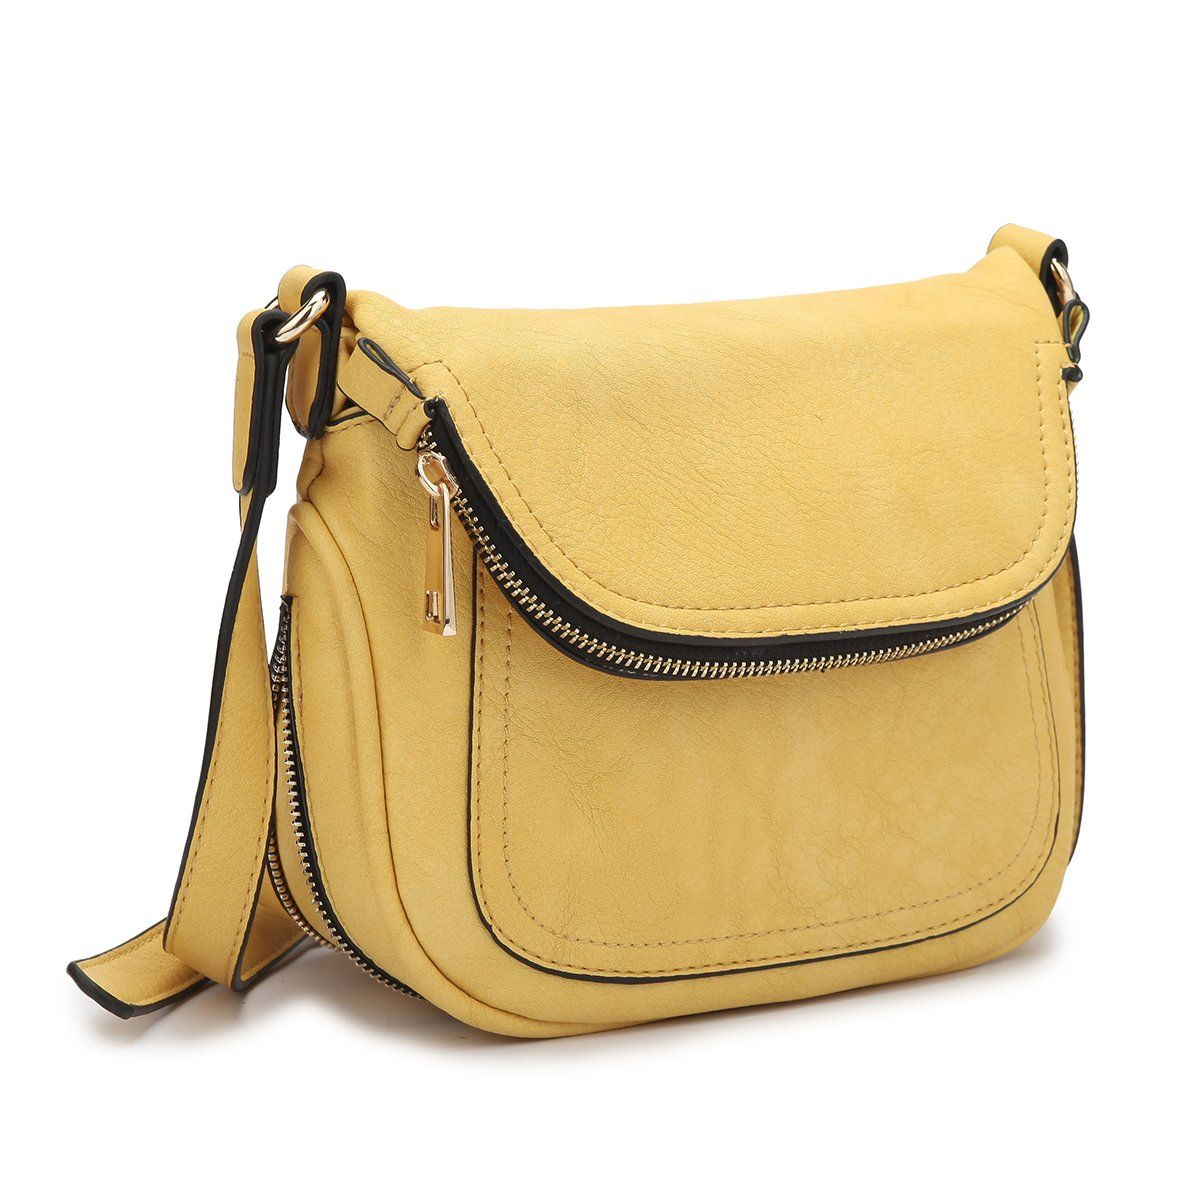 MMK collection Crossbody Bag ~Messenger Purse(2830)~ Crossbody Bag for Women~multiple pocket Messenger handbag. (2830 Yellow)